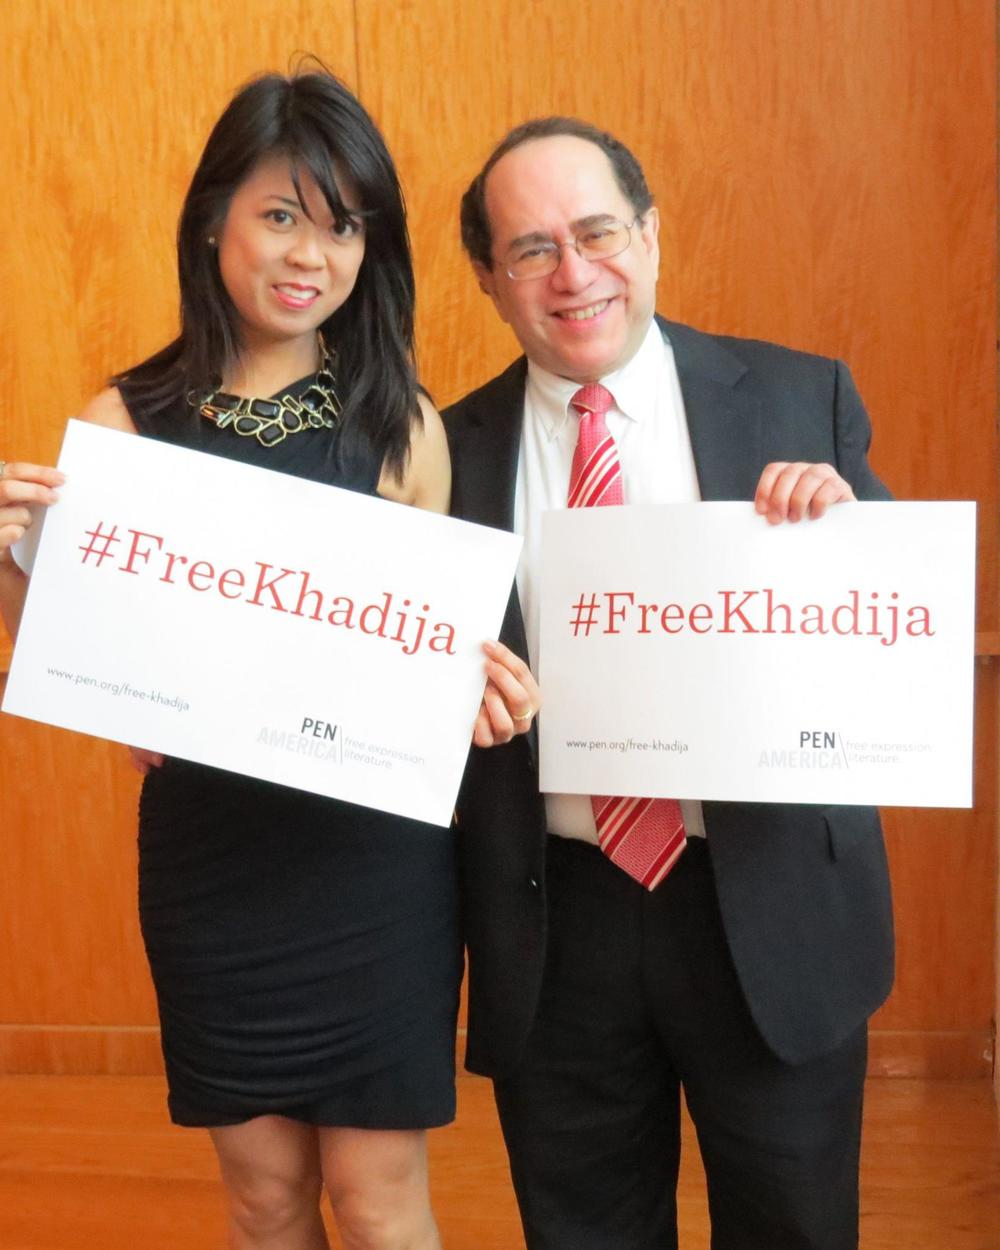 ‪ #FreeKhadija #Baku2015 #PENAwards